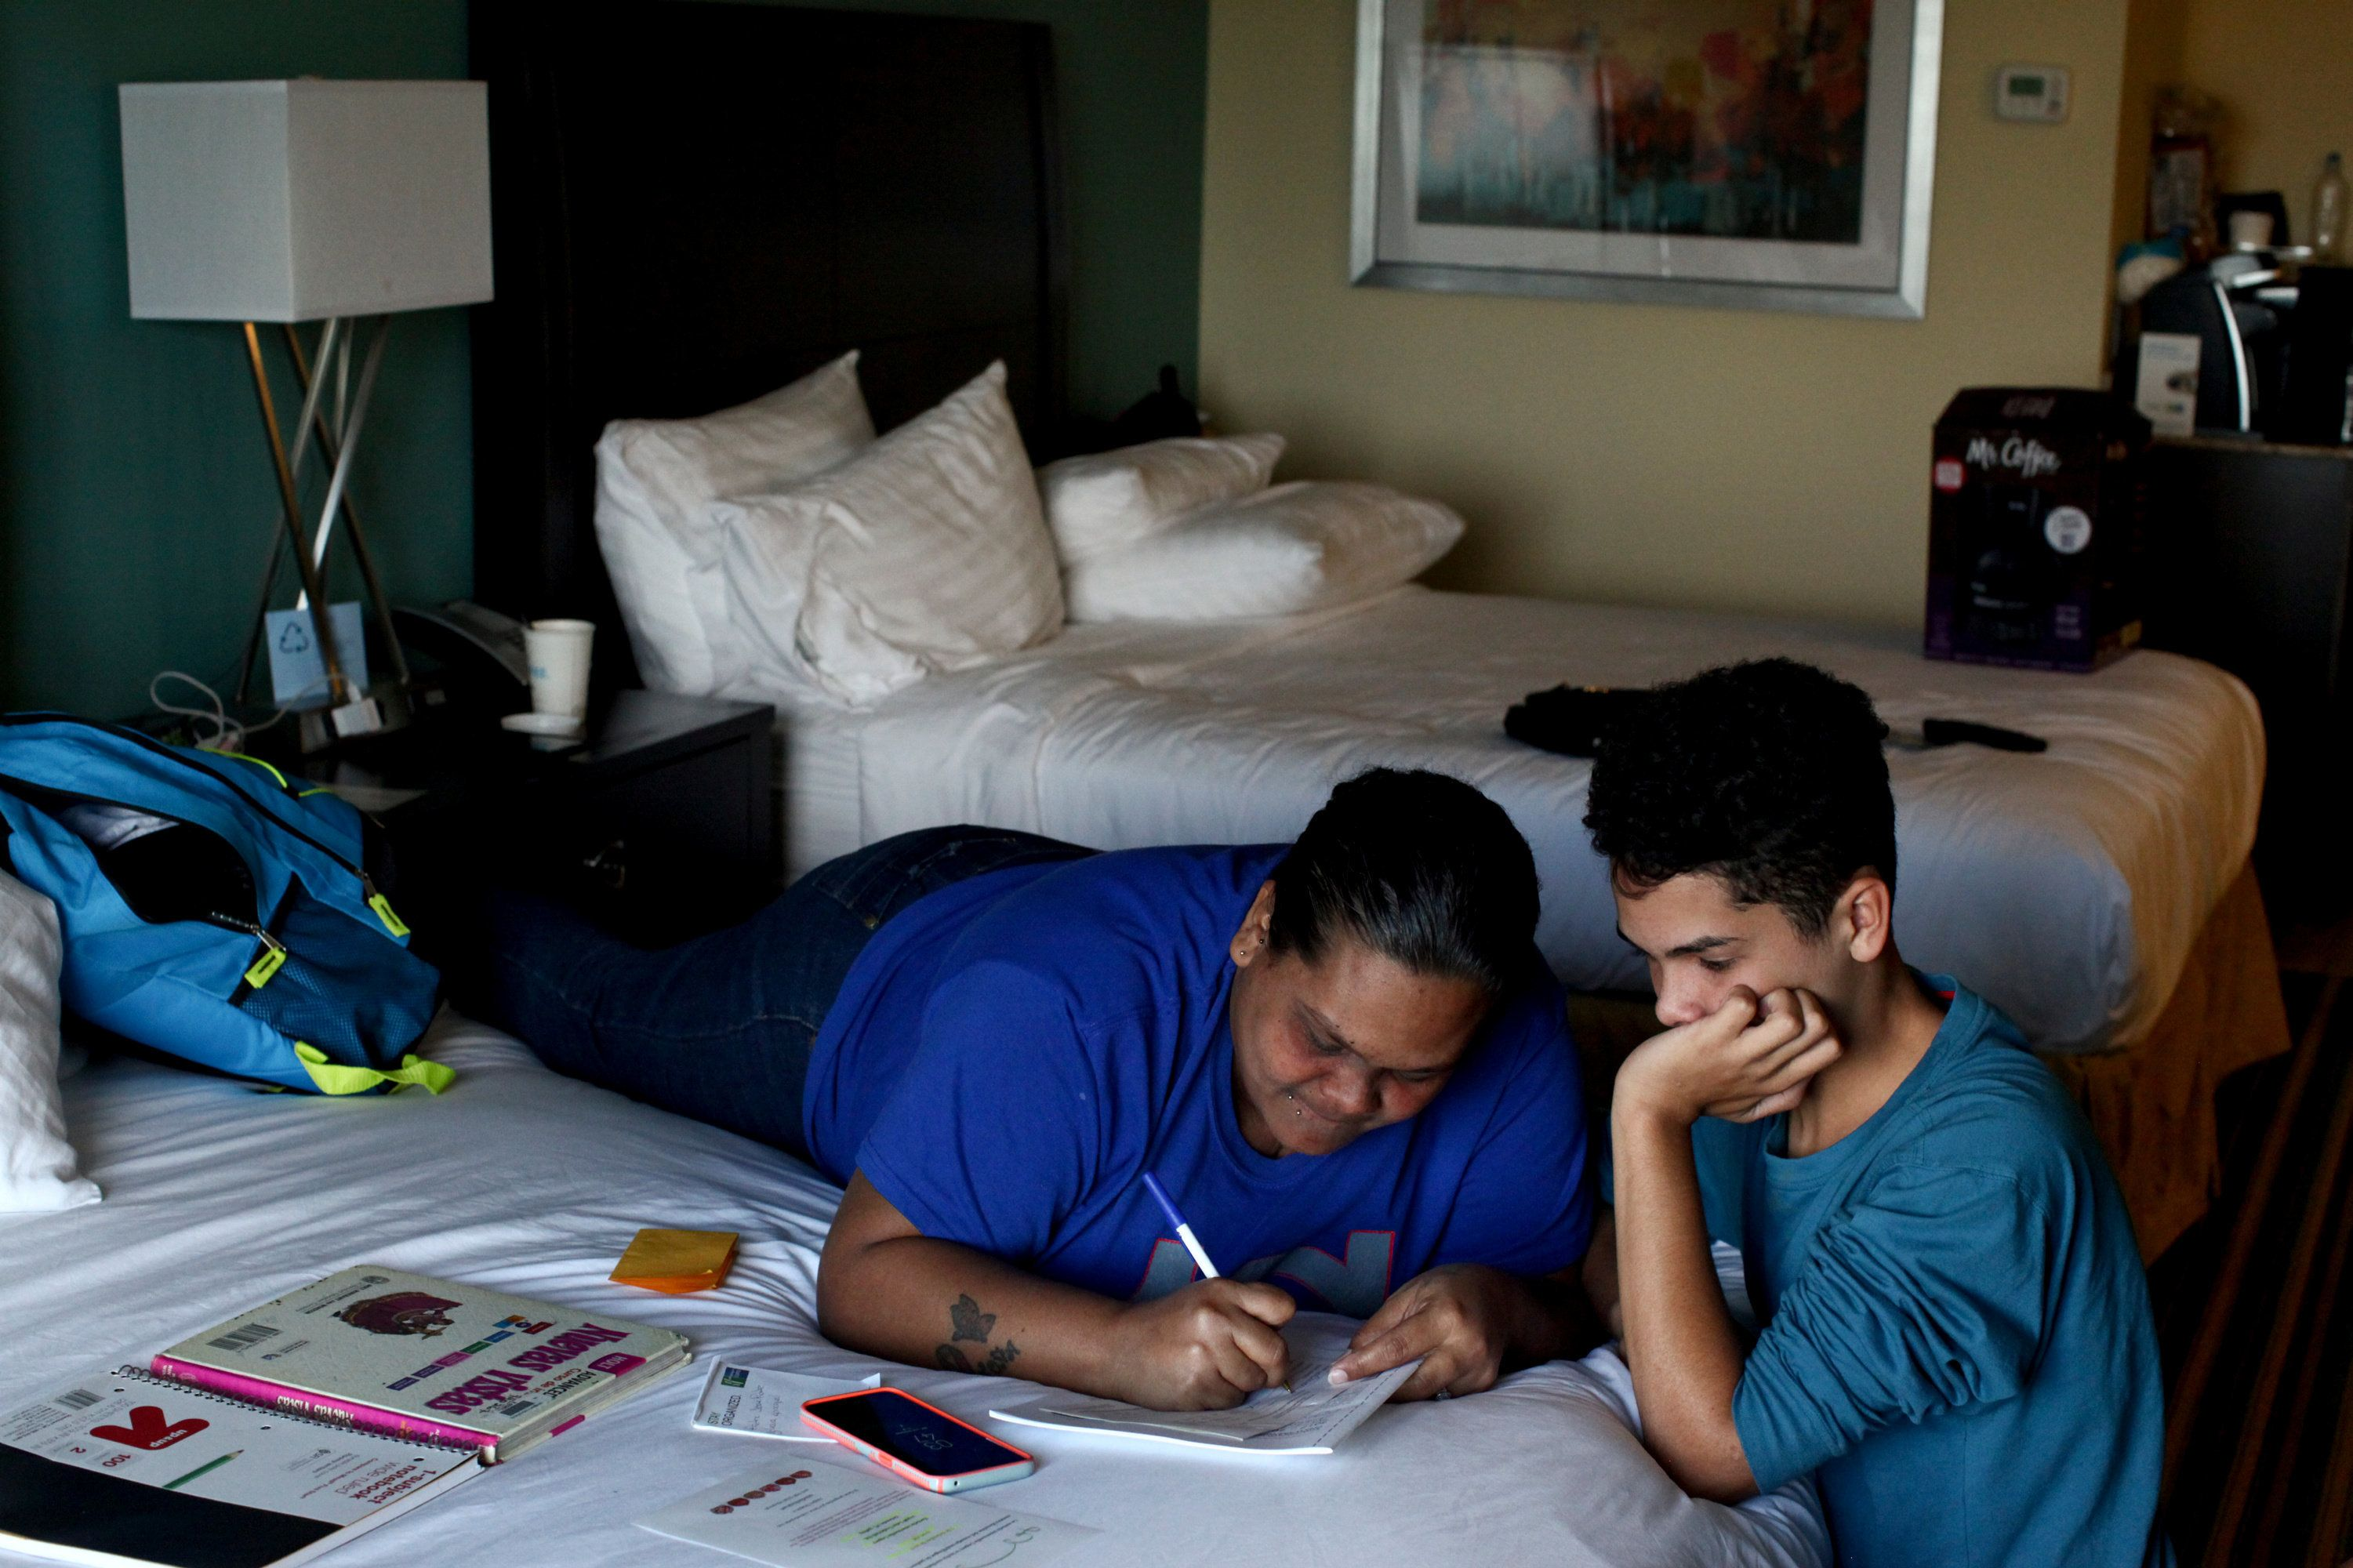 Liz Vazquez helps her son Raymond Fernandez Vazquez with his homework in an Orlando, Florida hotel room, where they've been l